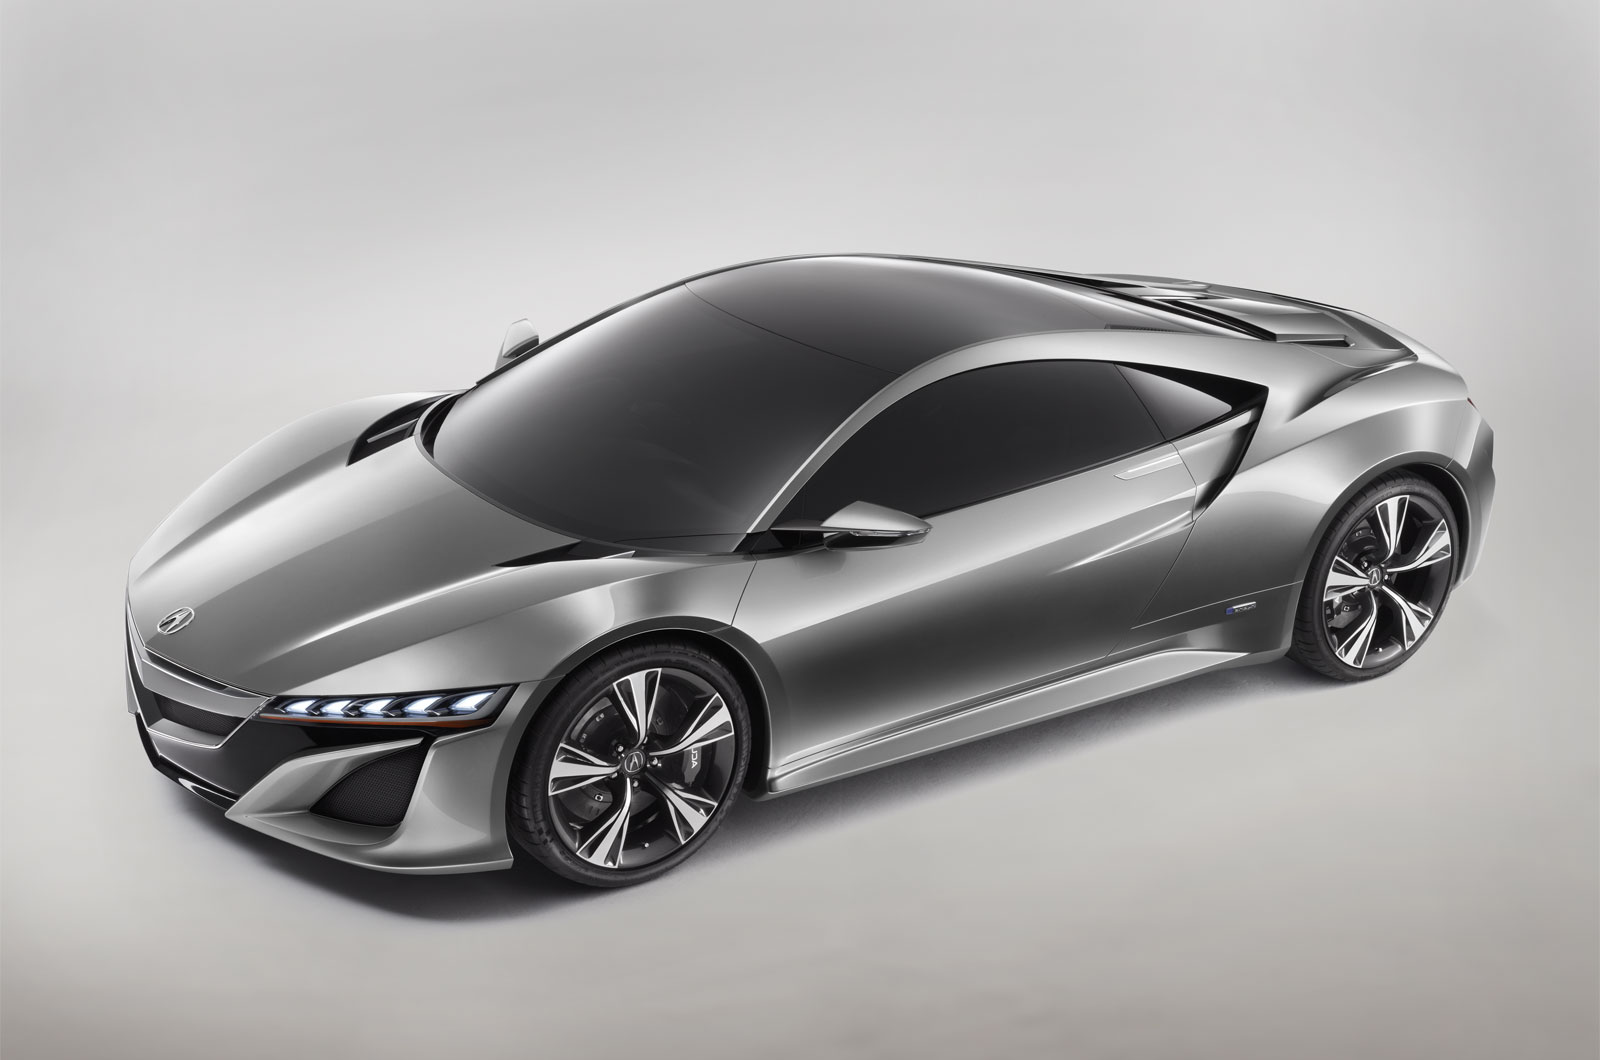 2012 Acura NSX Concept photo - 11